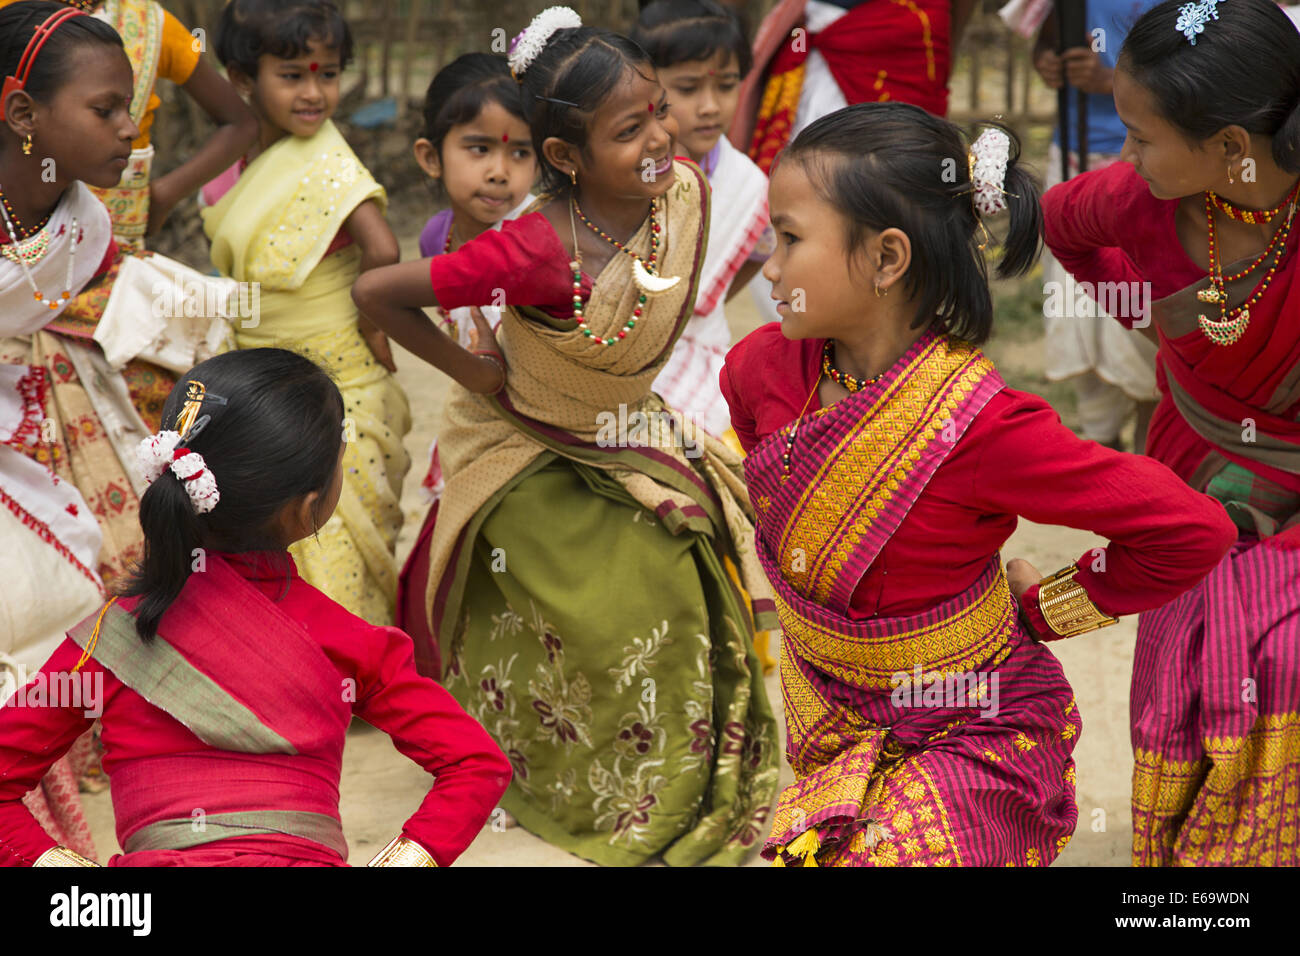 bihu dance of assam The bihu dance is an indigenous folk dance from the indian state of assam related to the bihu festival of the indigenous assamese people.